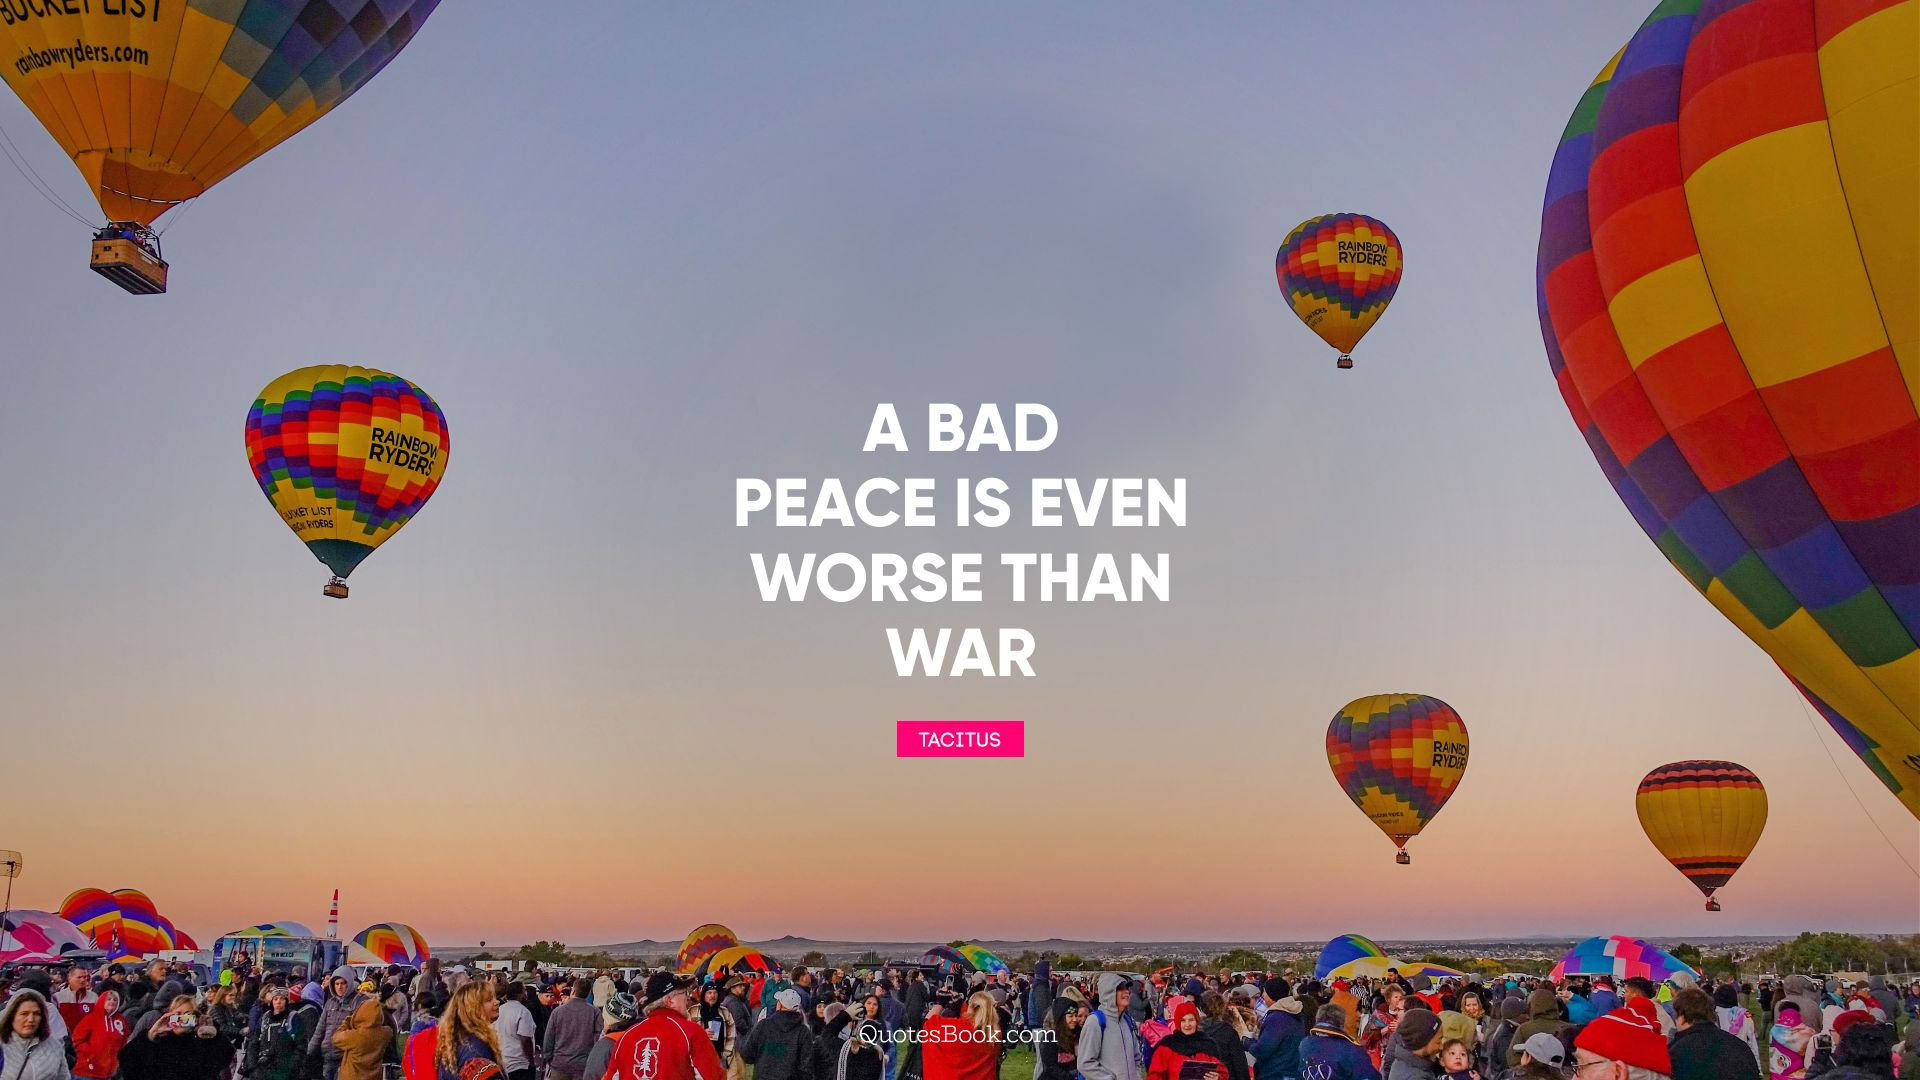 A bad peace is even worse than war. - Quote by Tacitus